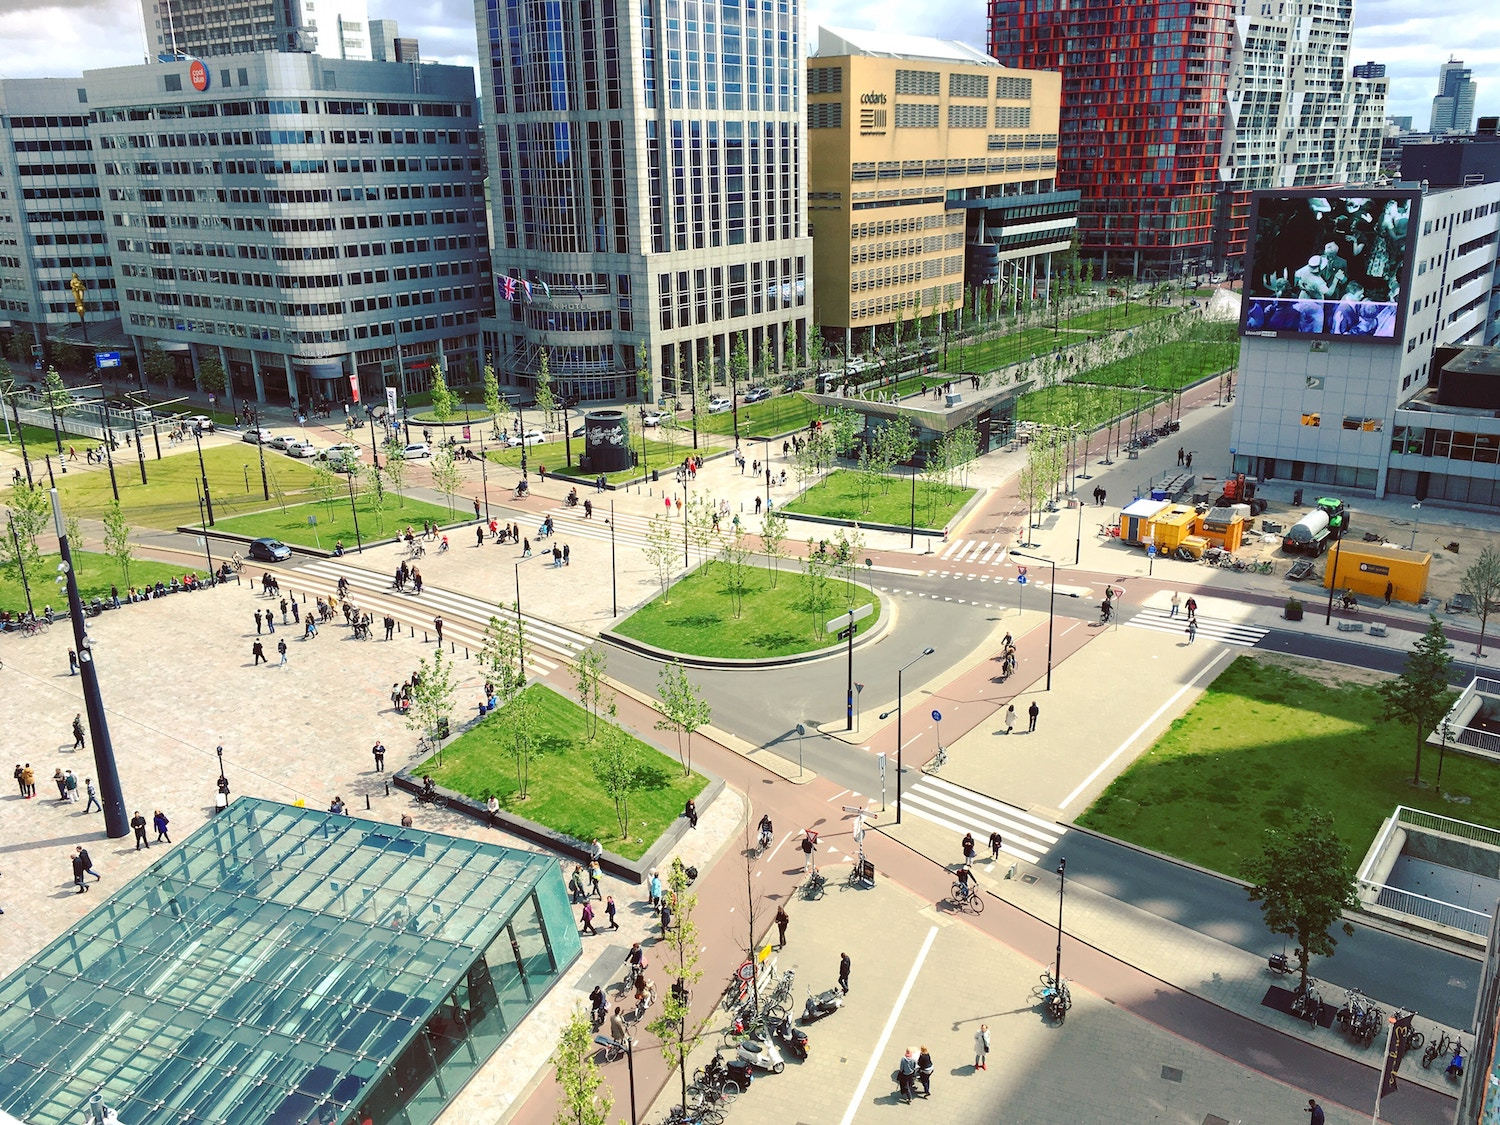 Rotterdam's circular economy to create 7,000 jobs - Positive News